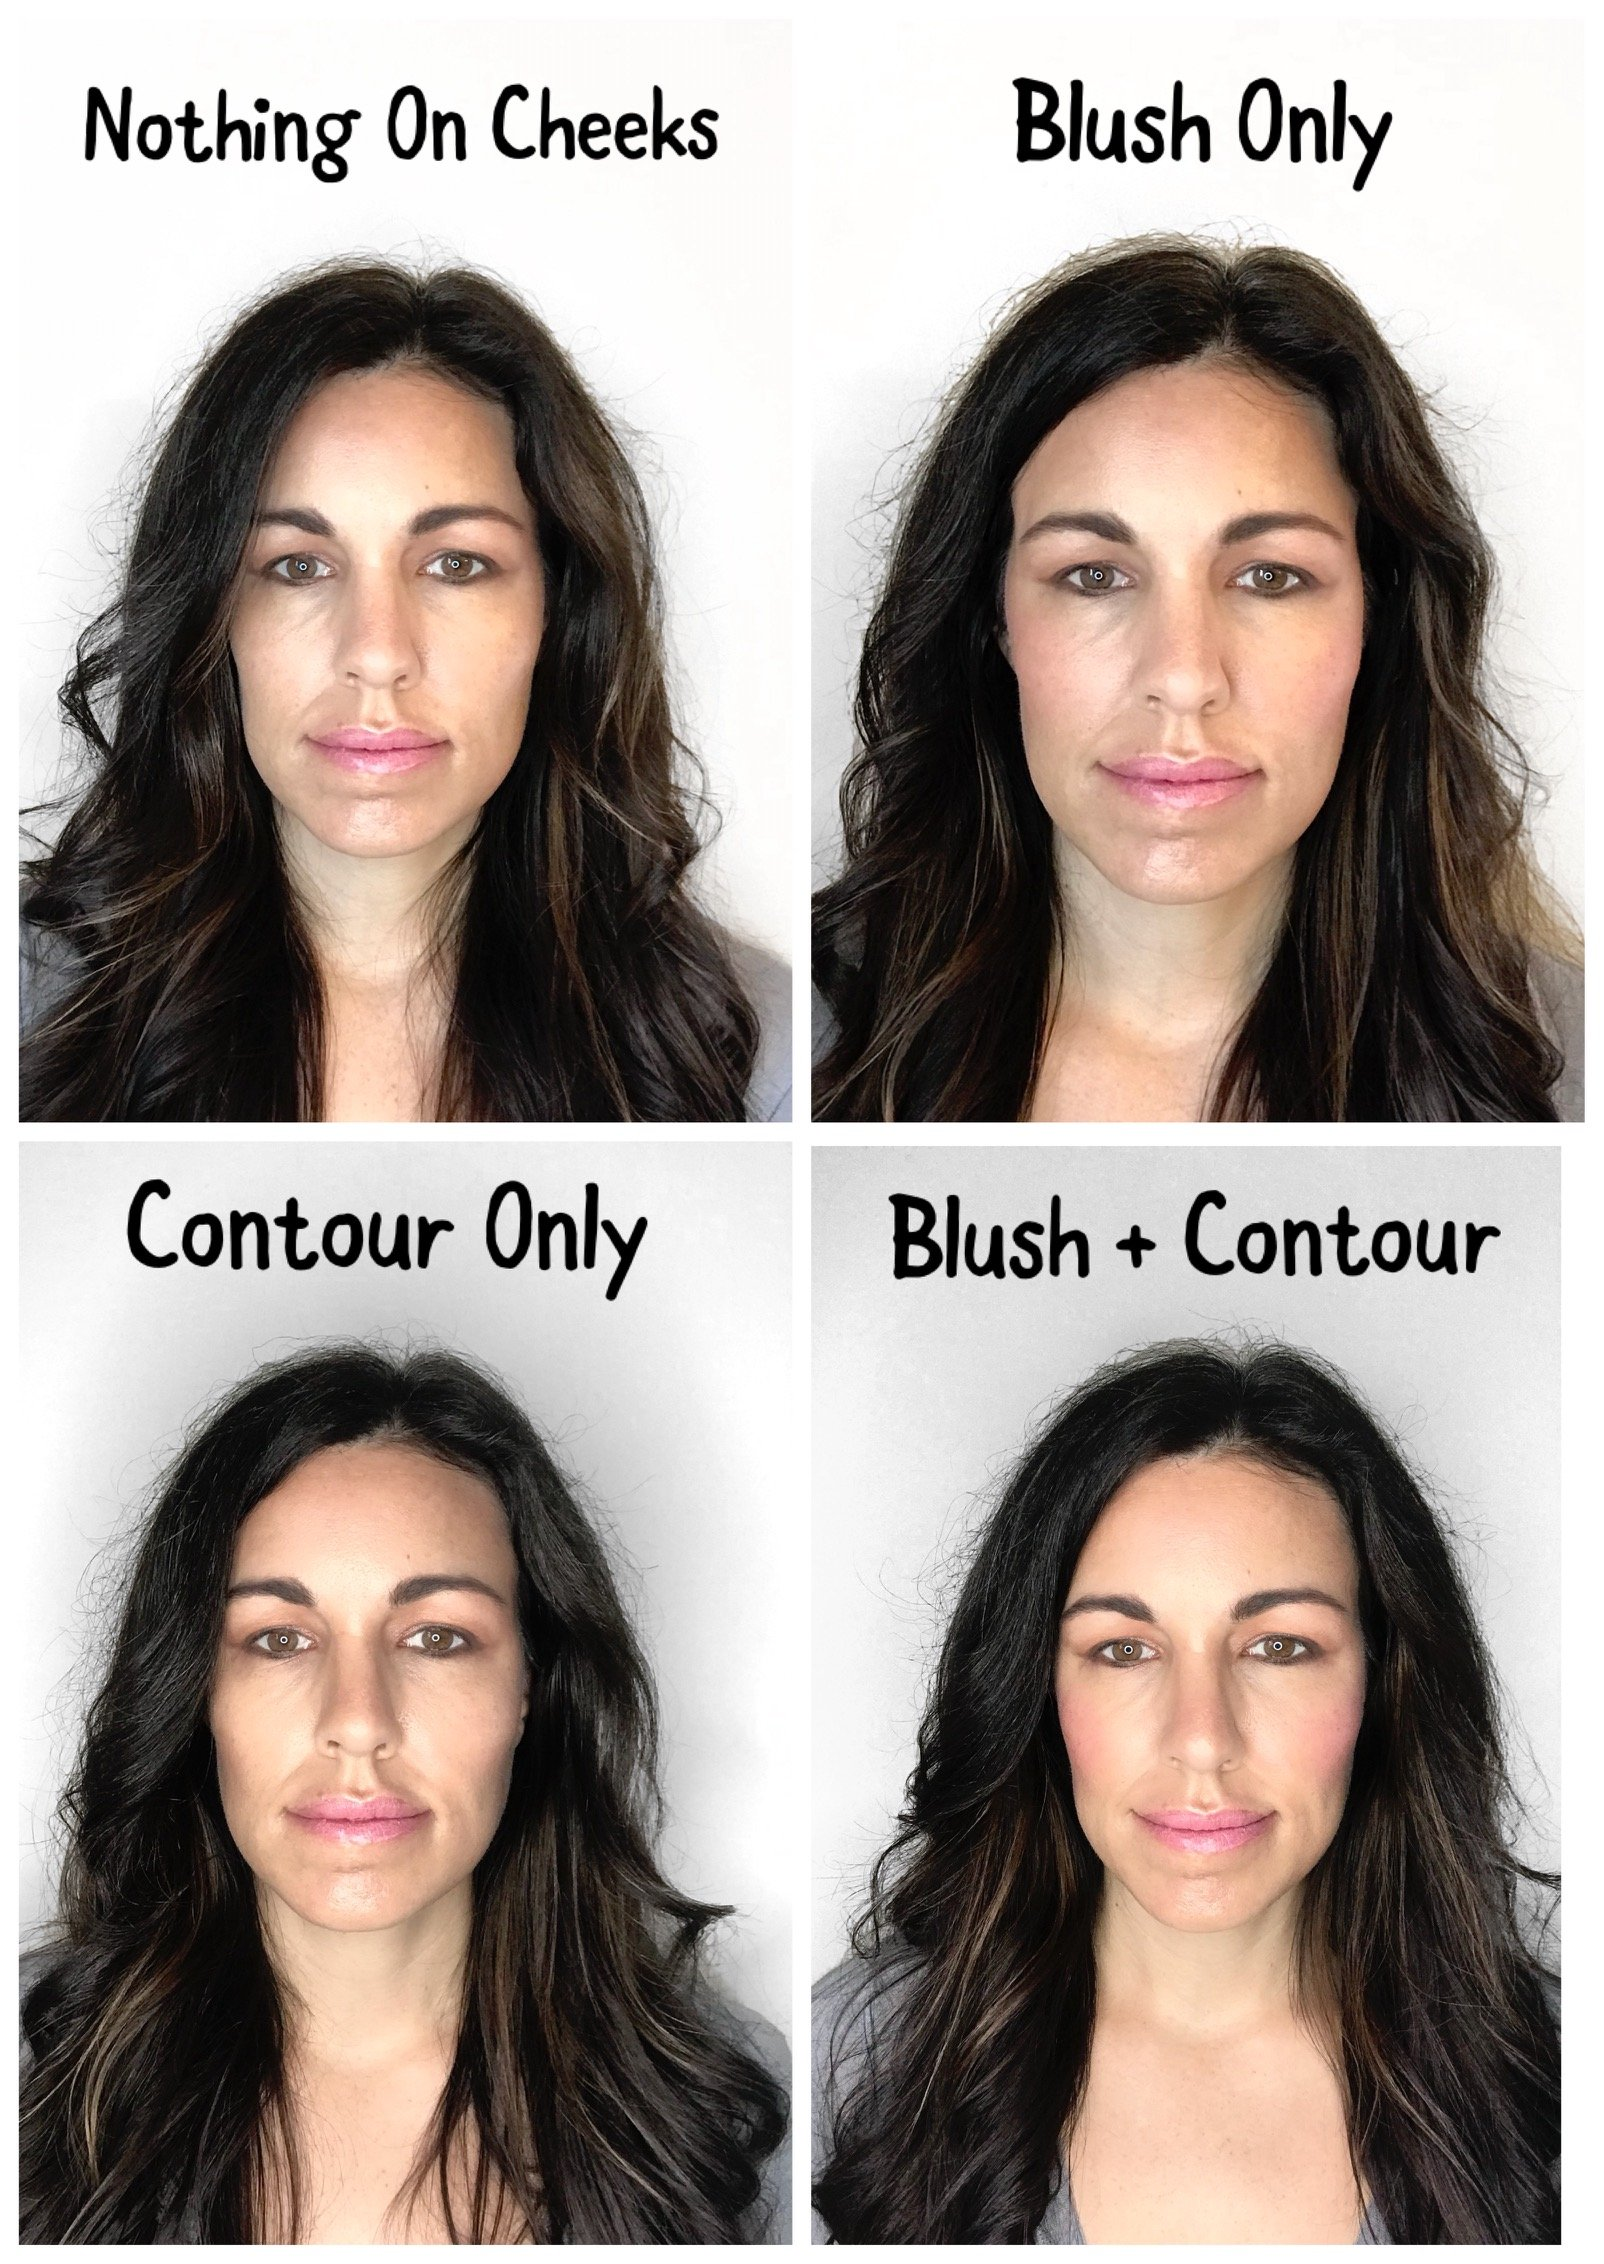 blush and contour